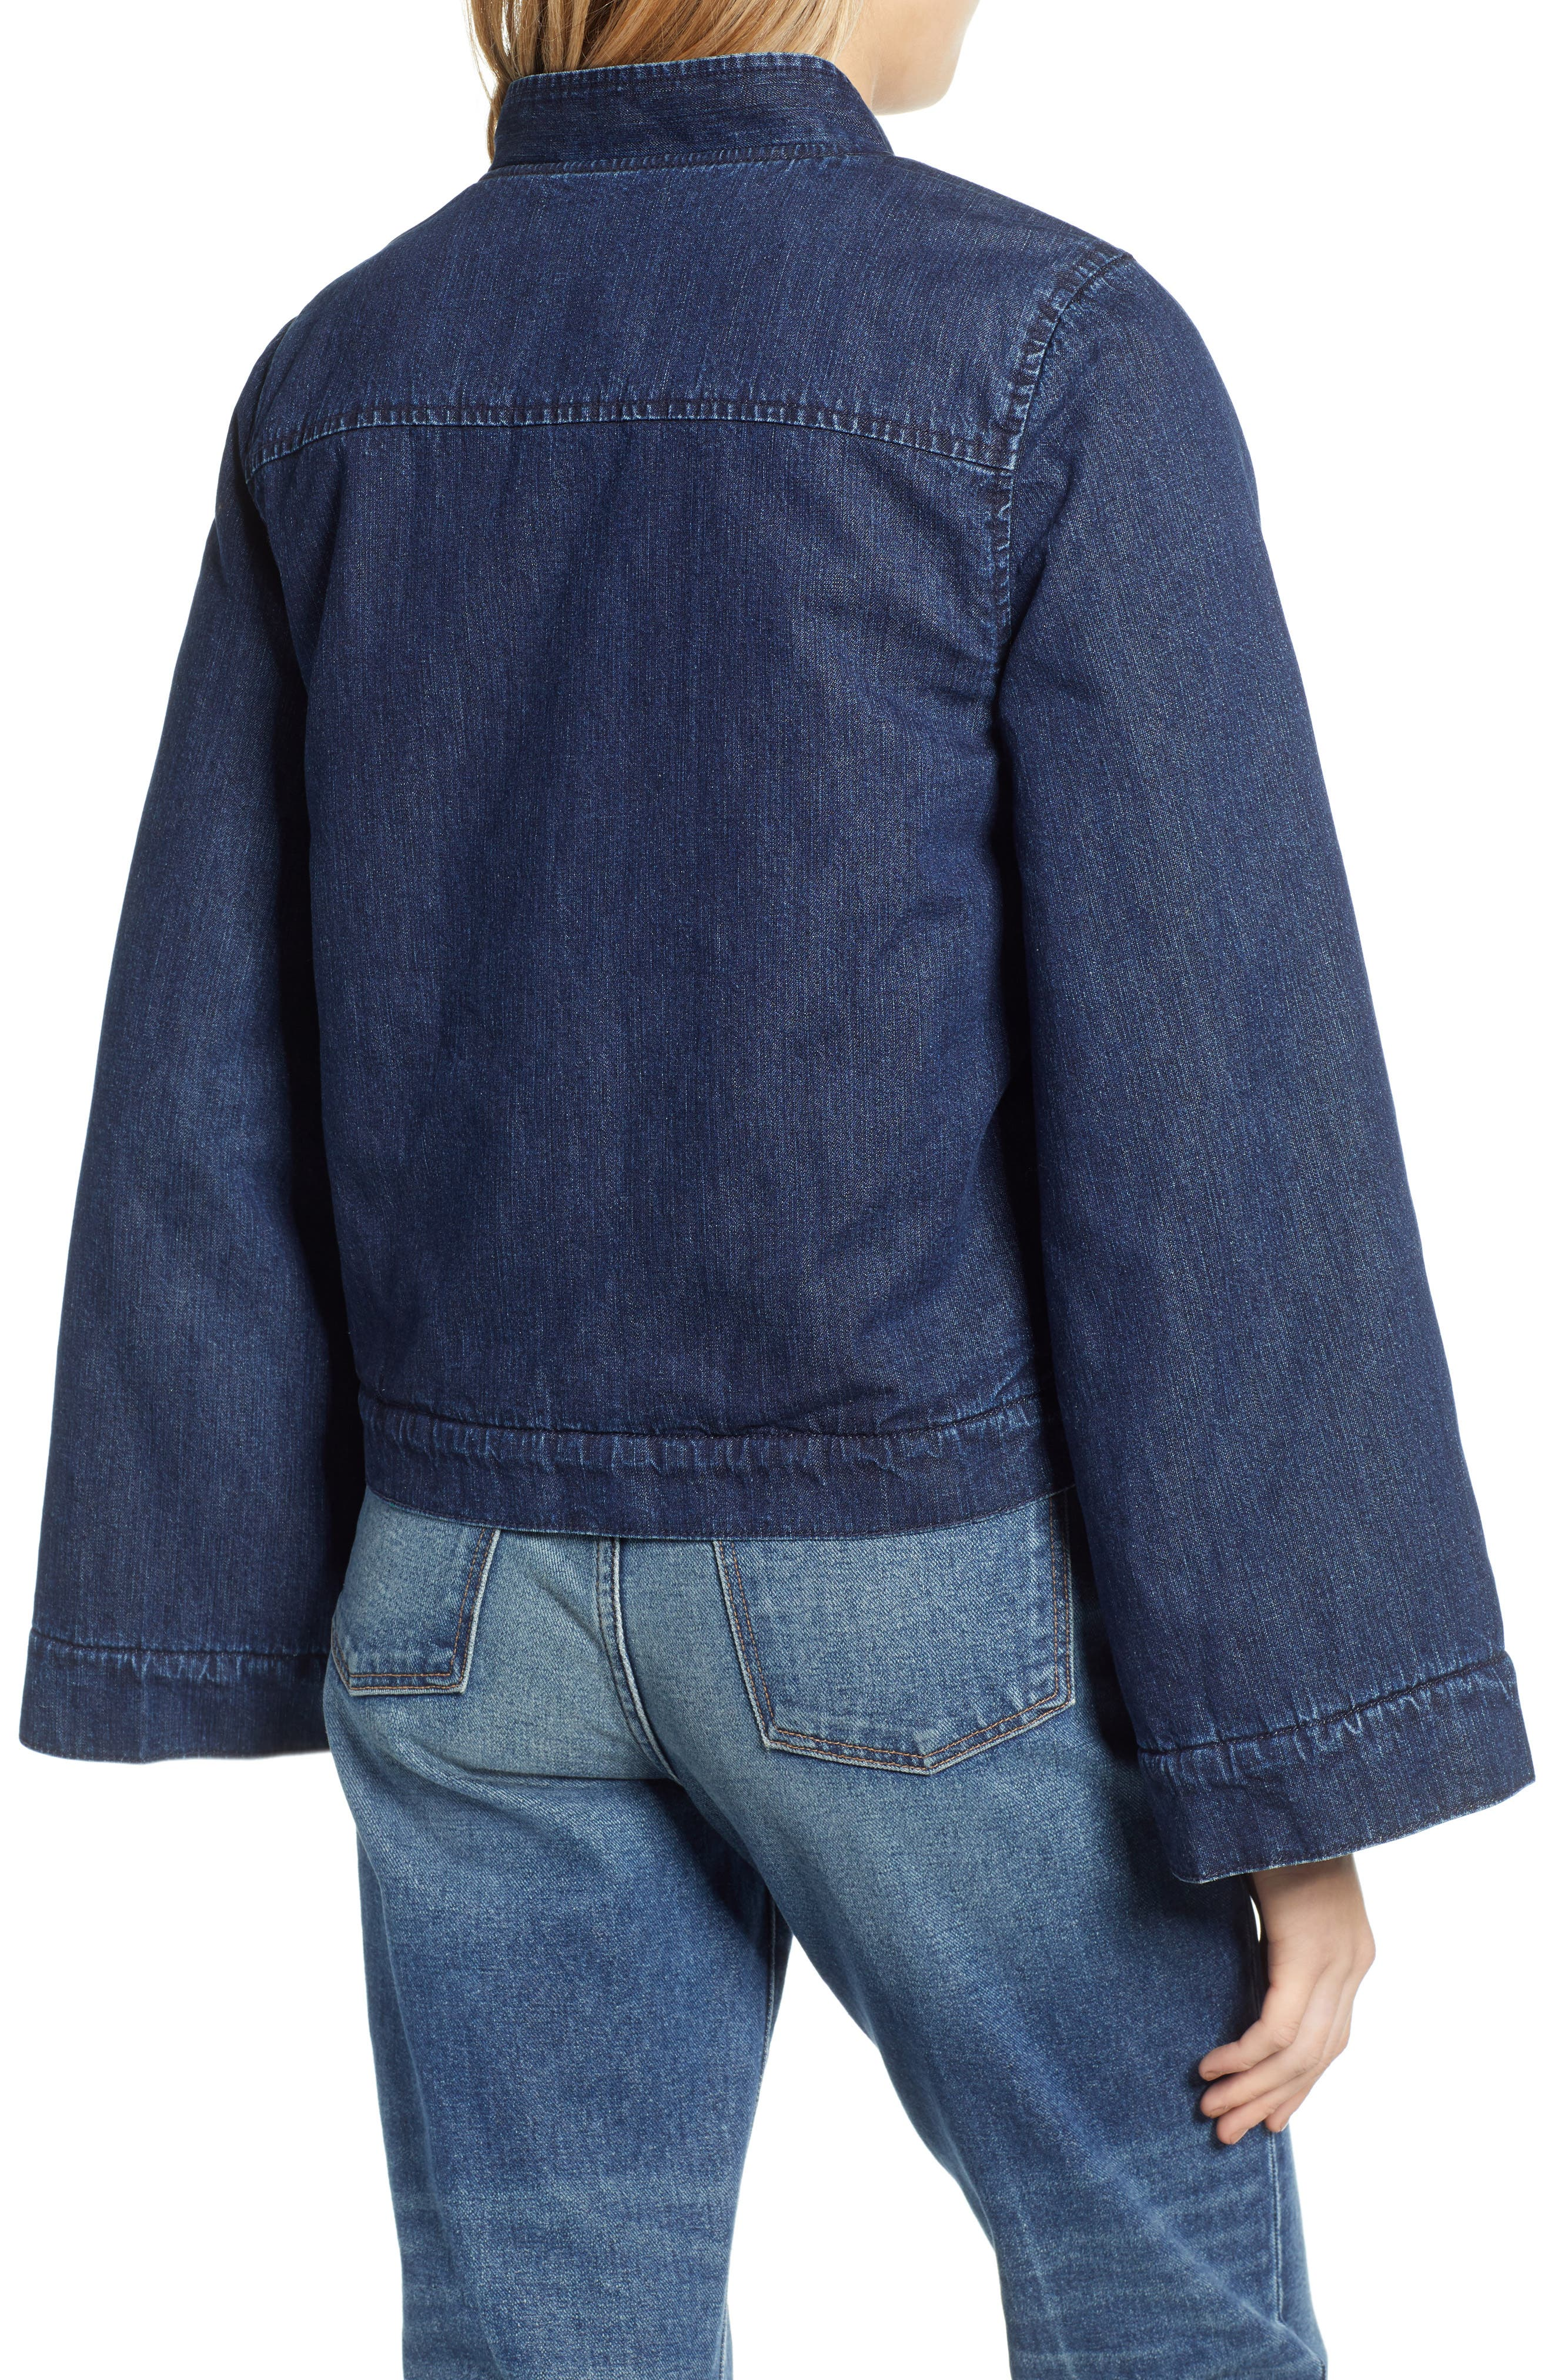 MADEWELL, Reversible Fleece Jean Jacket, Alternate thumbnail 2, color, 400